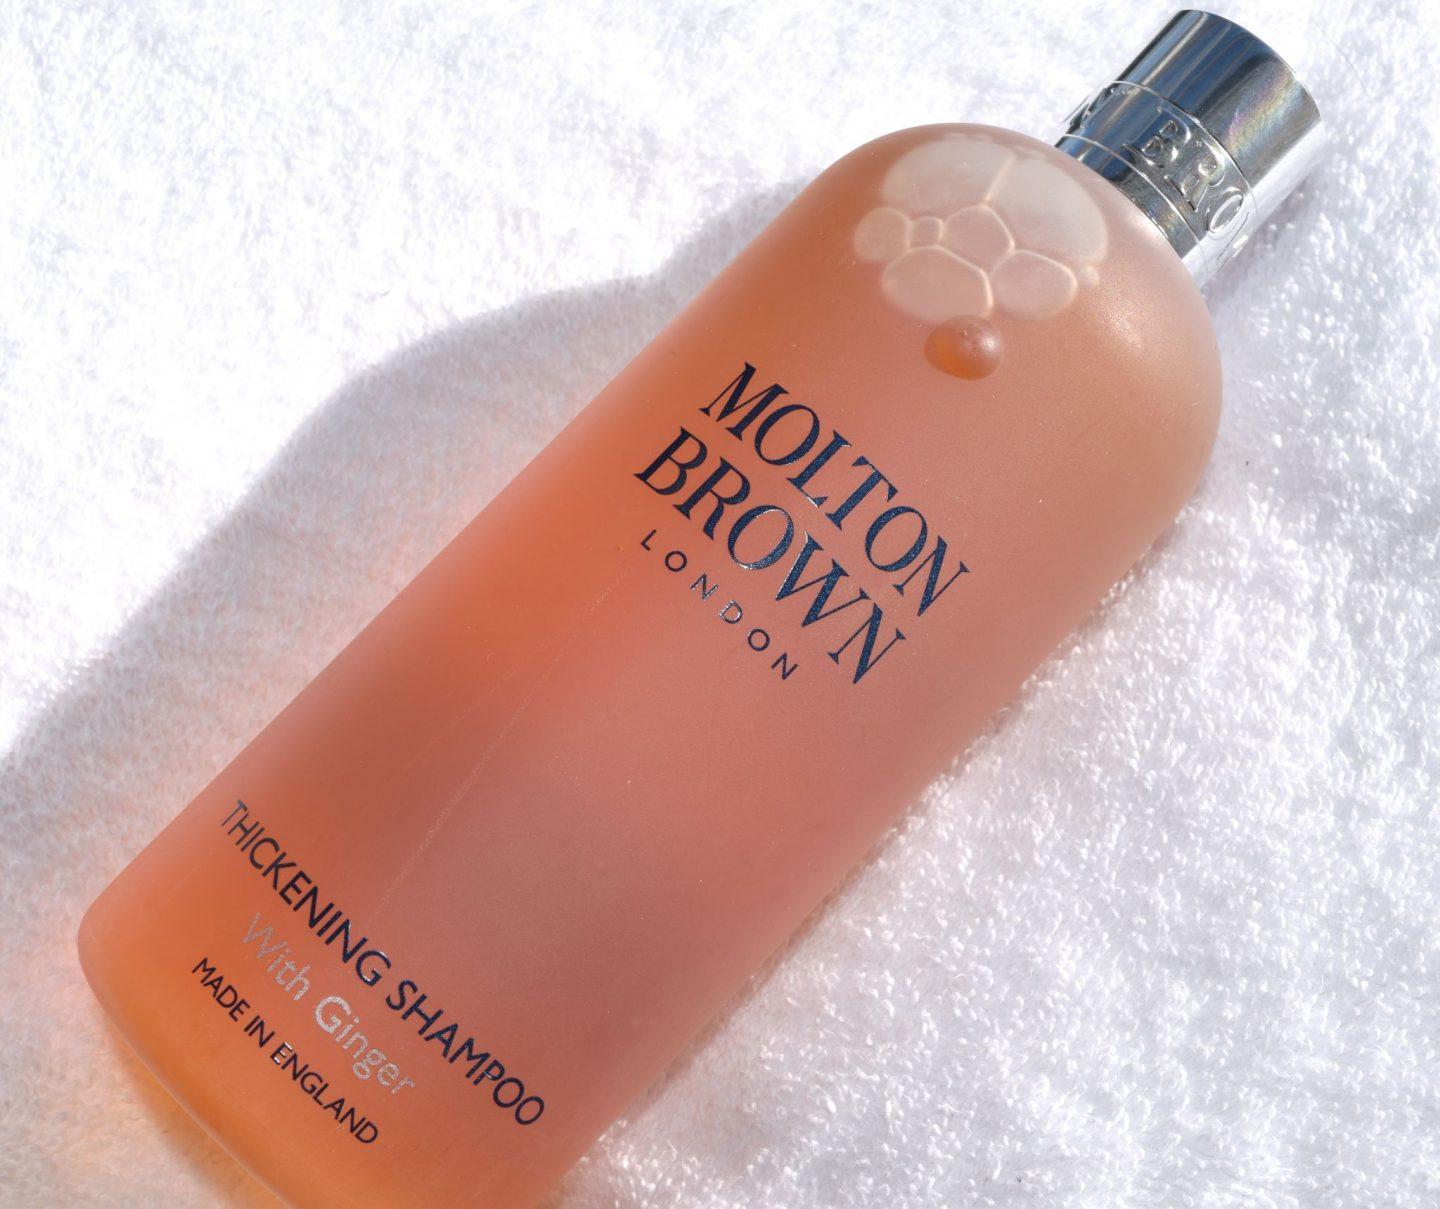 Molton Brown Thickening Shampoo